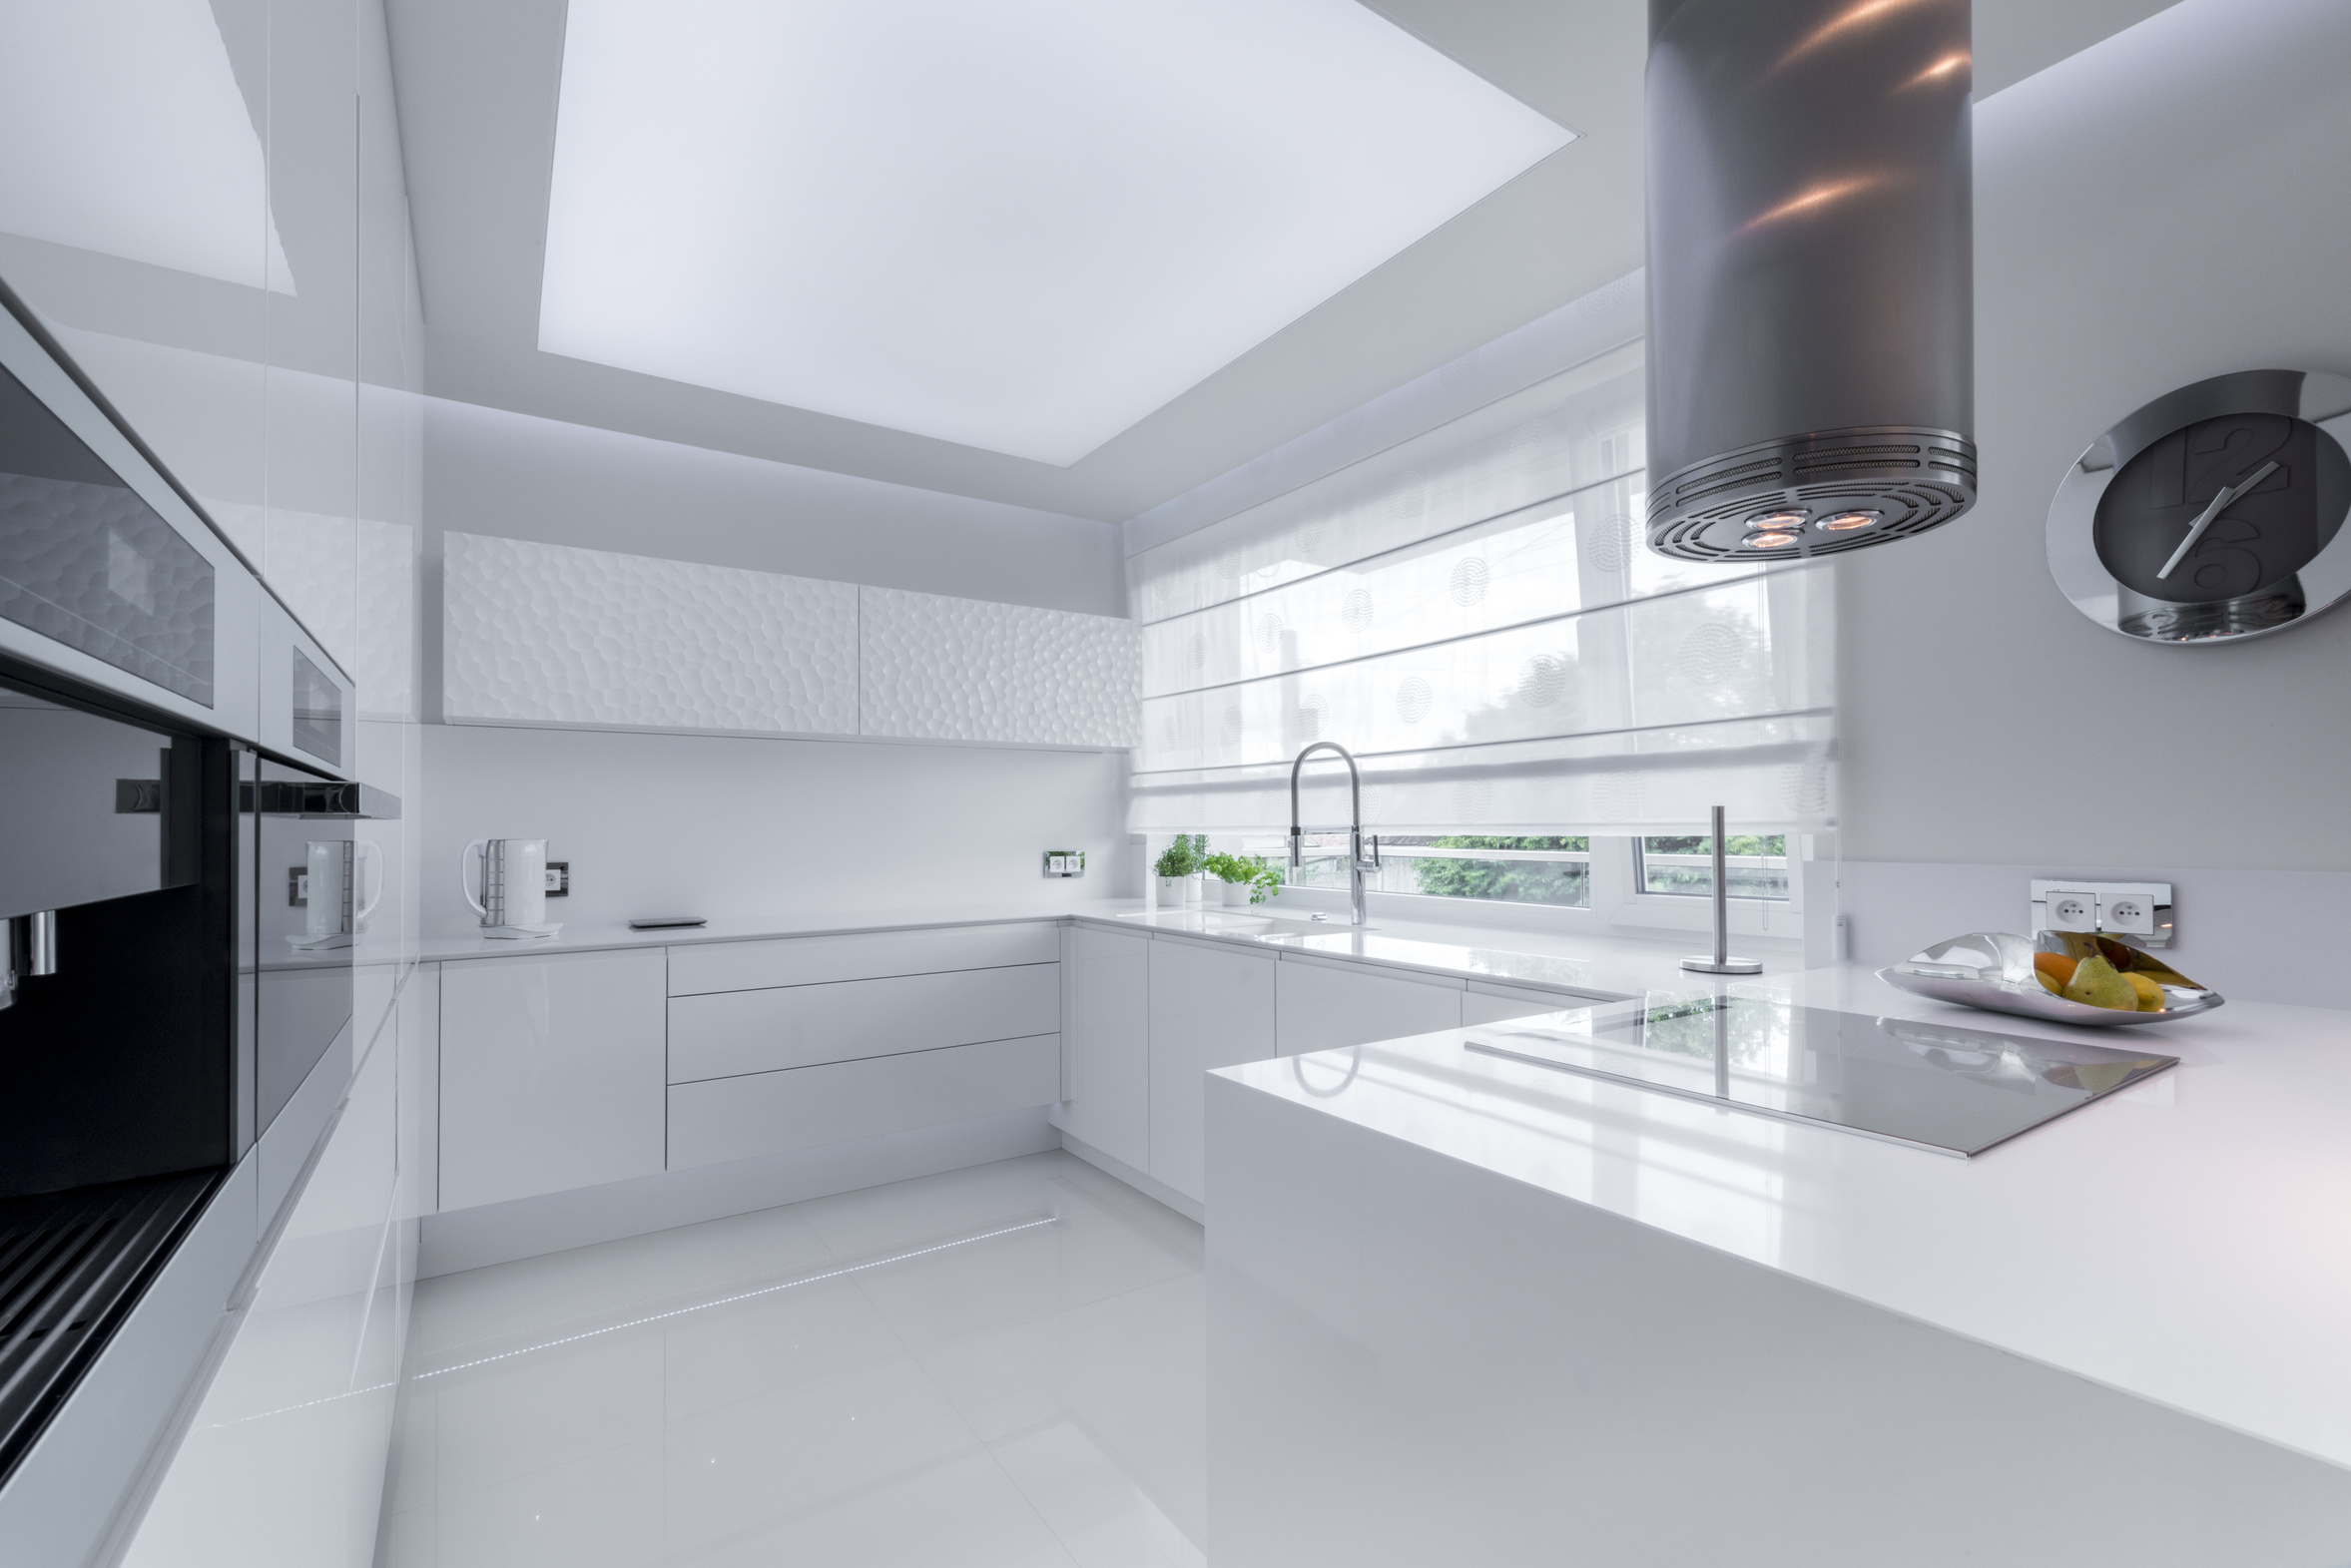 White, modern kitchen interior